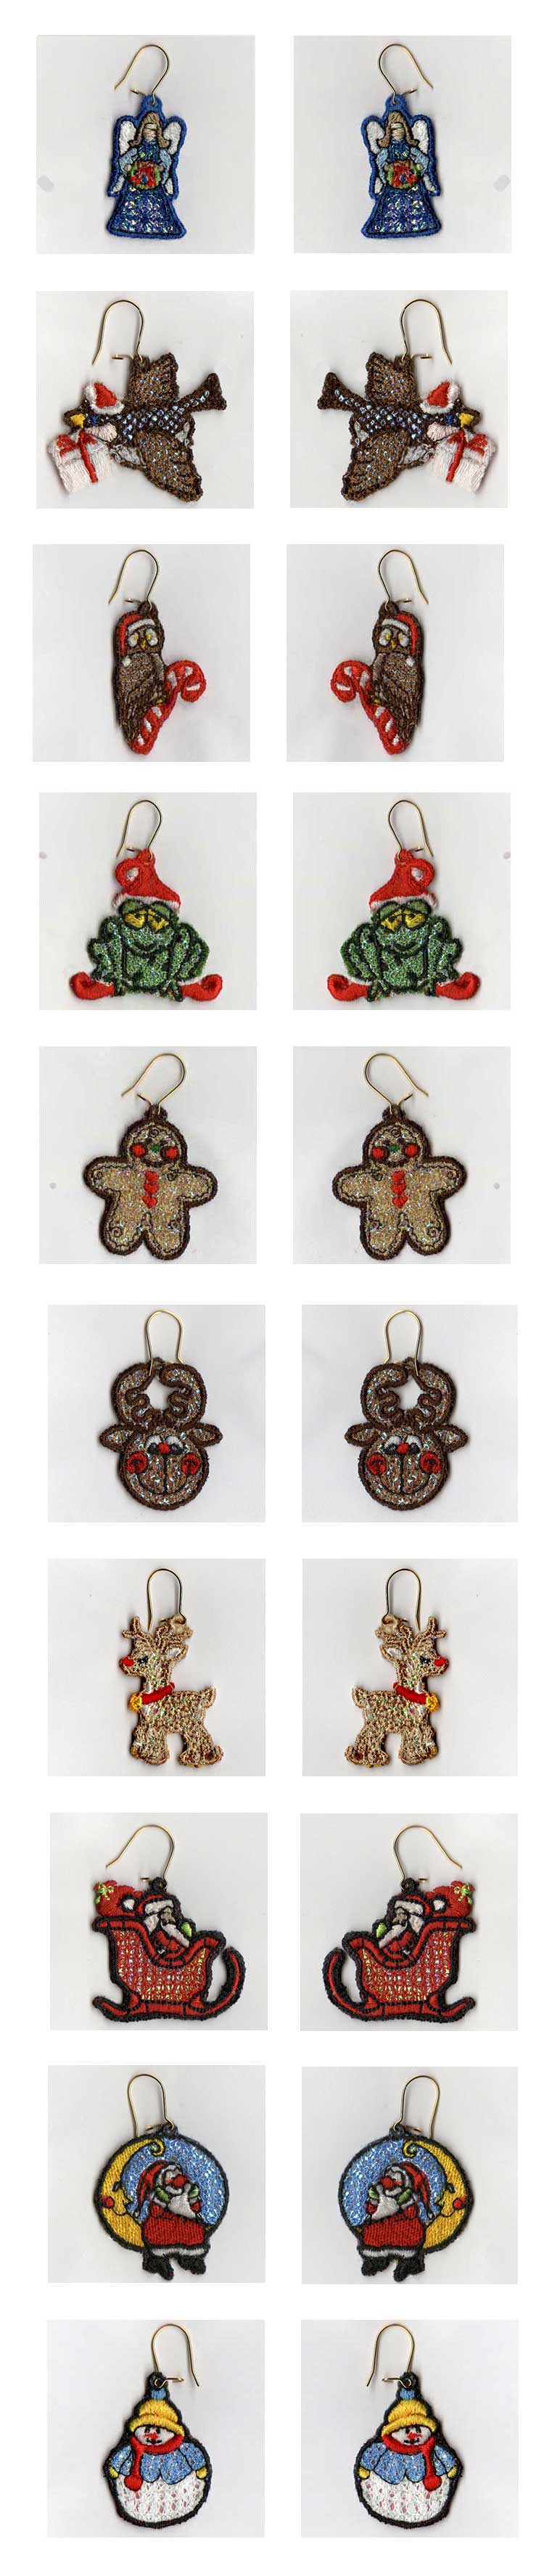 Free Standing Lace Mylar Holiday Earrings v2 Embroidery Machine Design Details